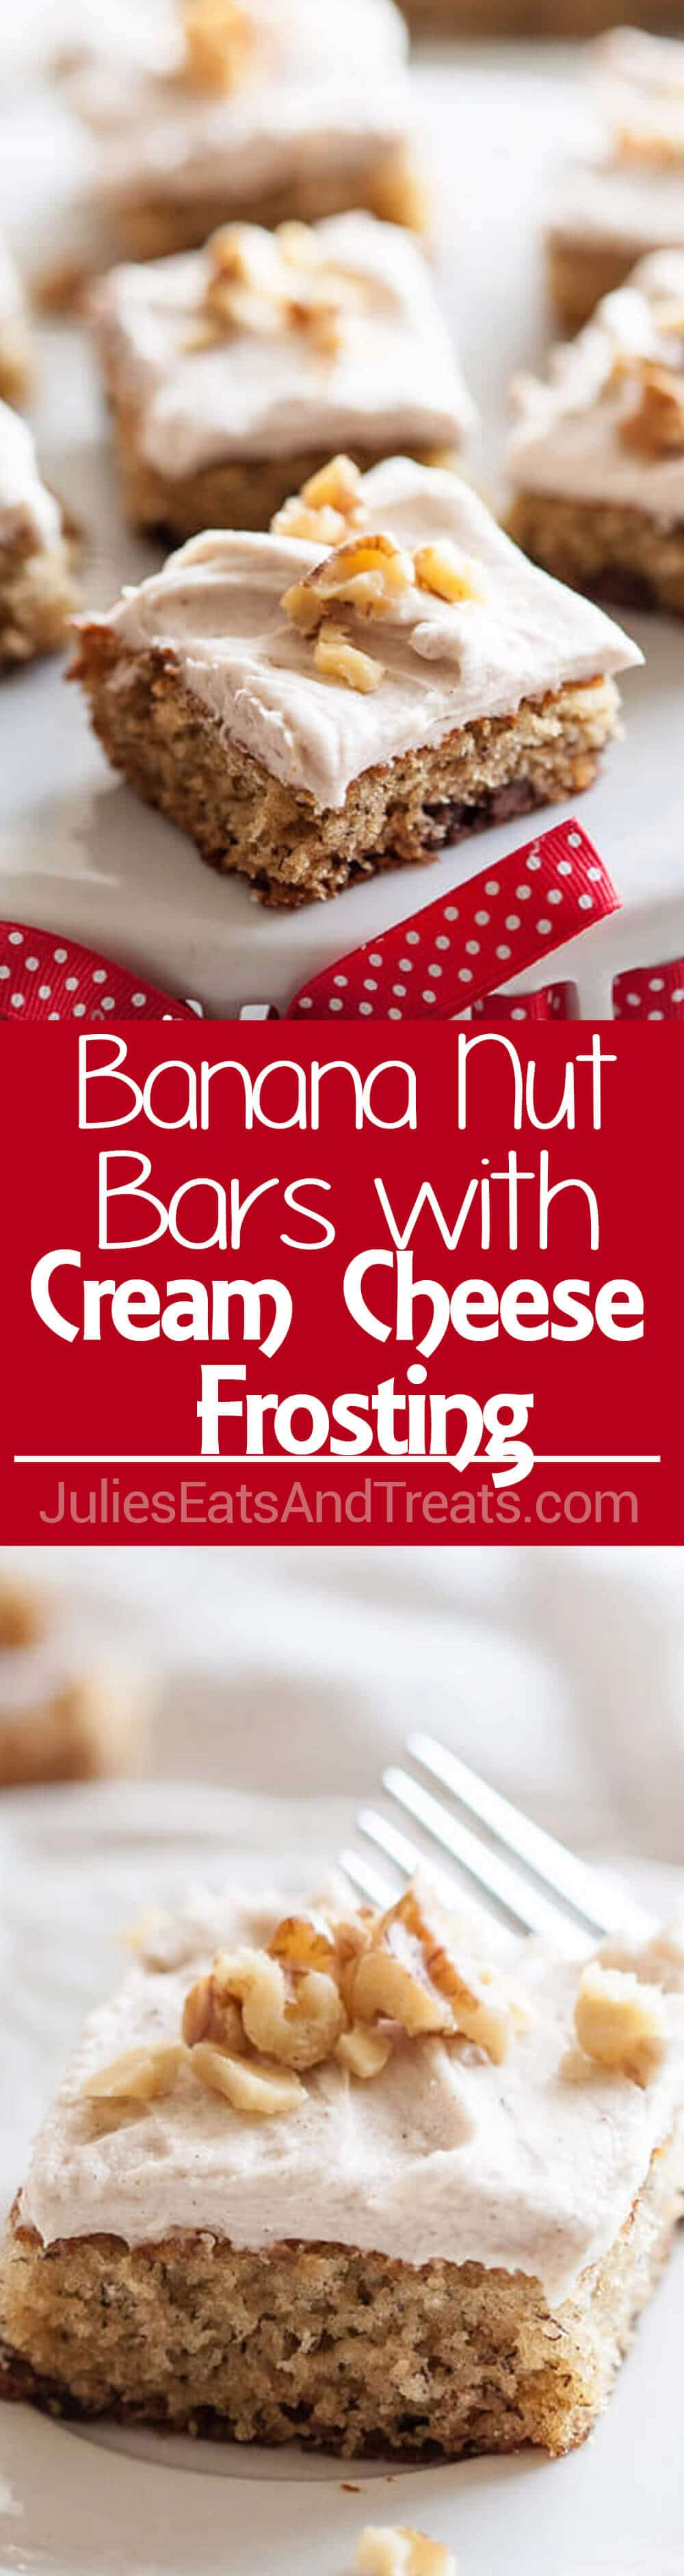 Banana Nut Bars with Cinnamon Cream Cheese Frosting ~ Fluffy, Delicious Banana Bars Loaded with Walnuts and Topped with Cream Cheese Frosting with a Hint of Cinnamon!